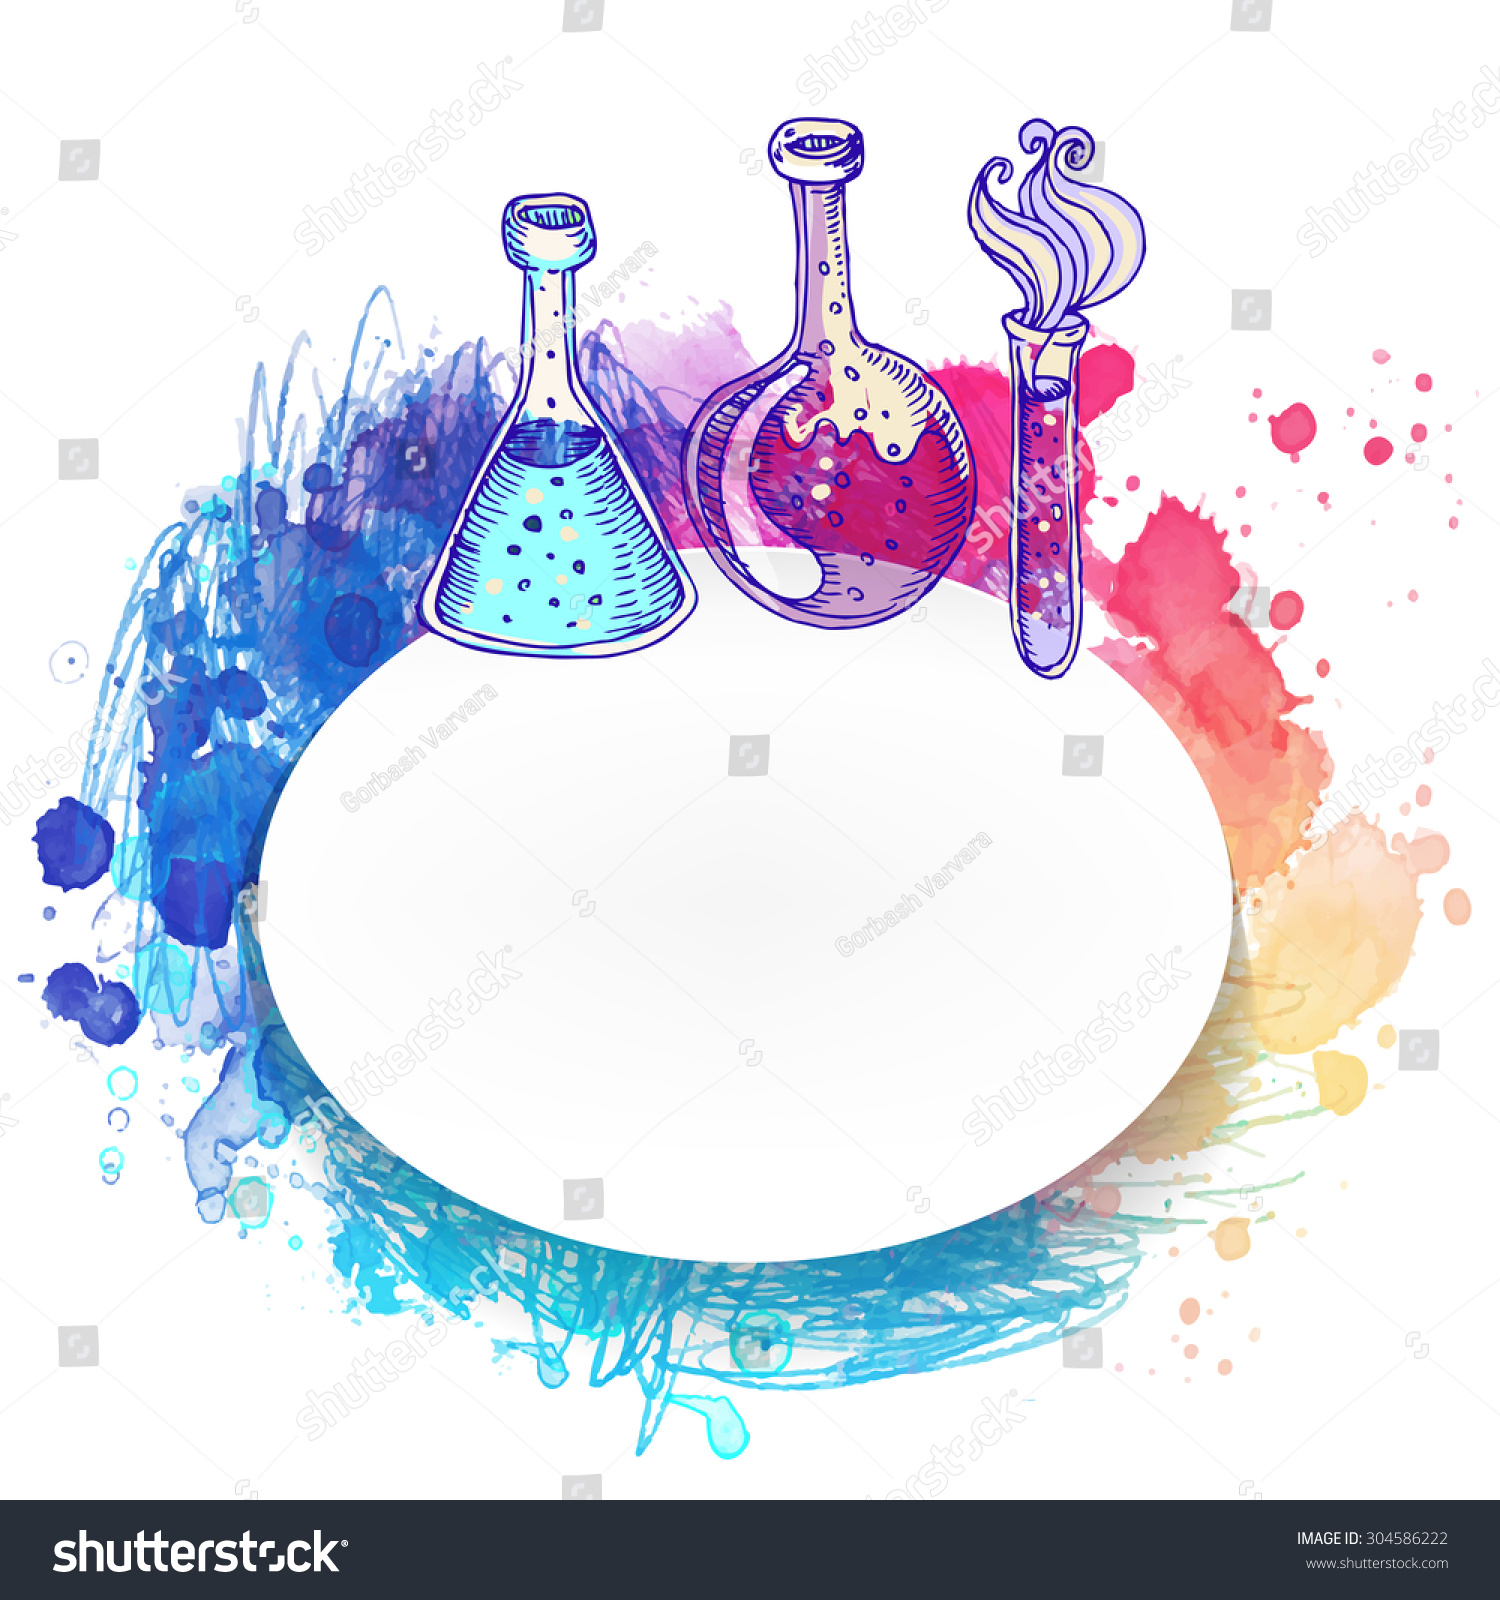 Science Laboratory Background Design: Back To School: Doodle Style Science Laboratory Beakers